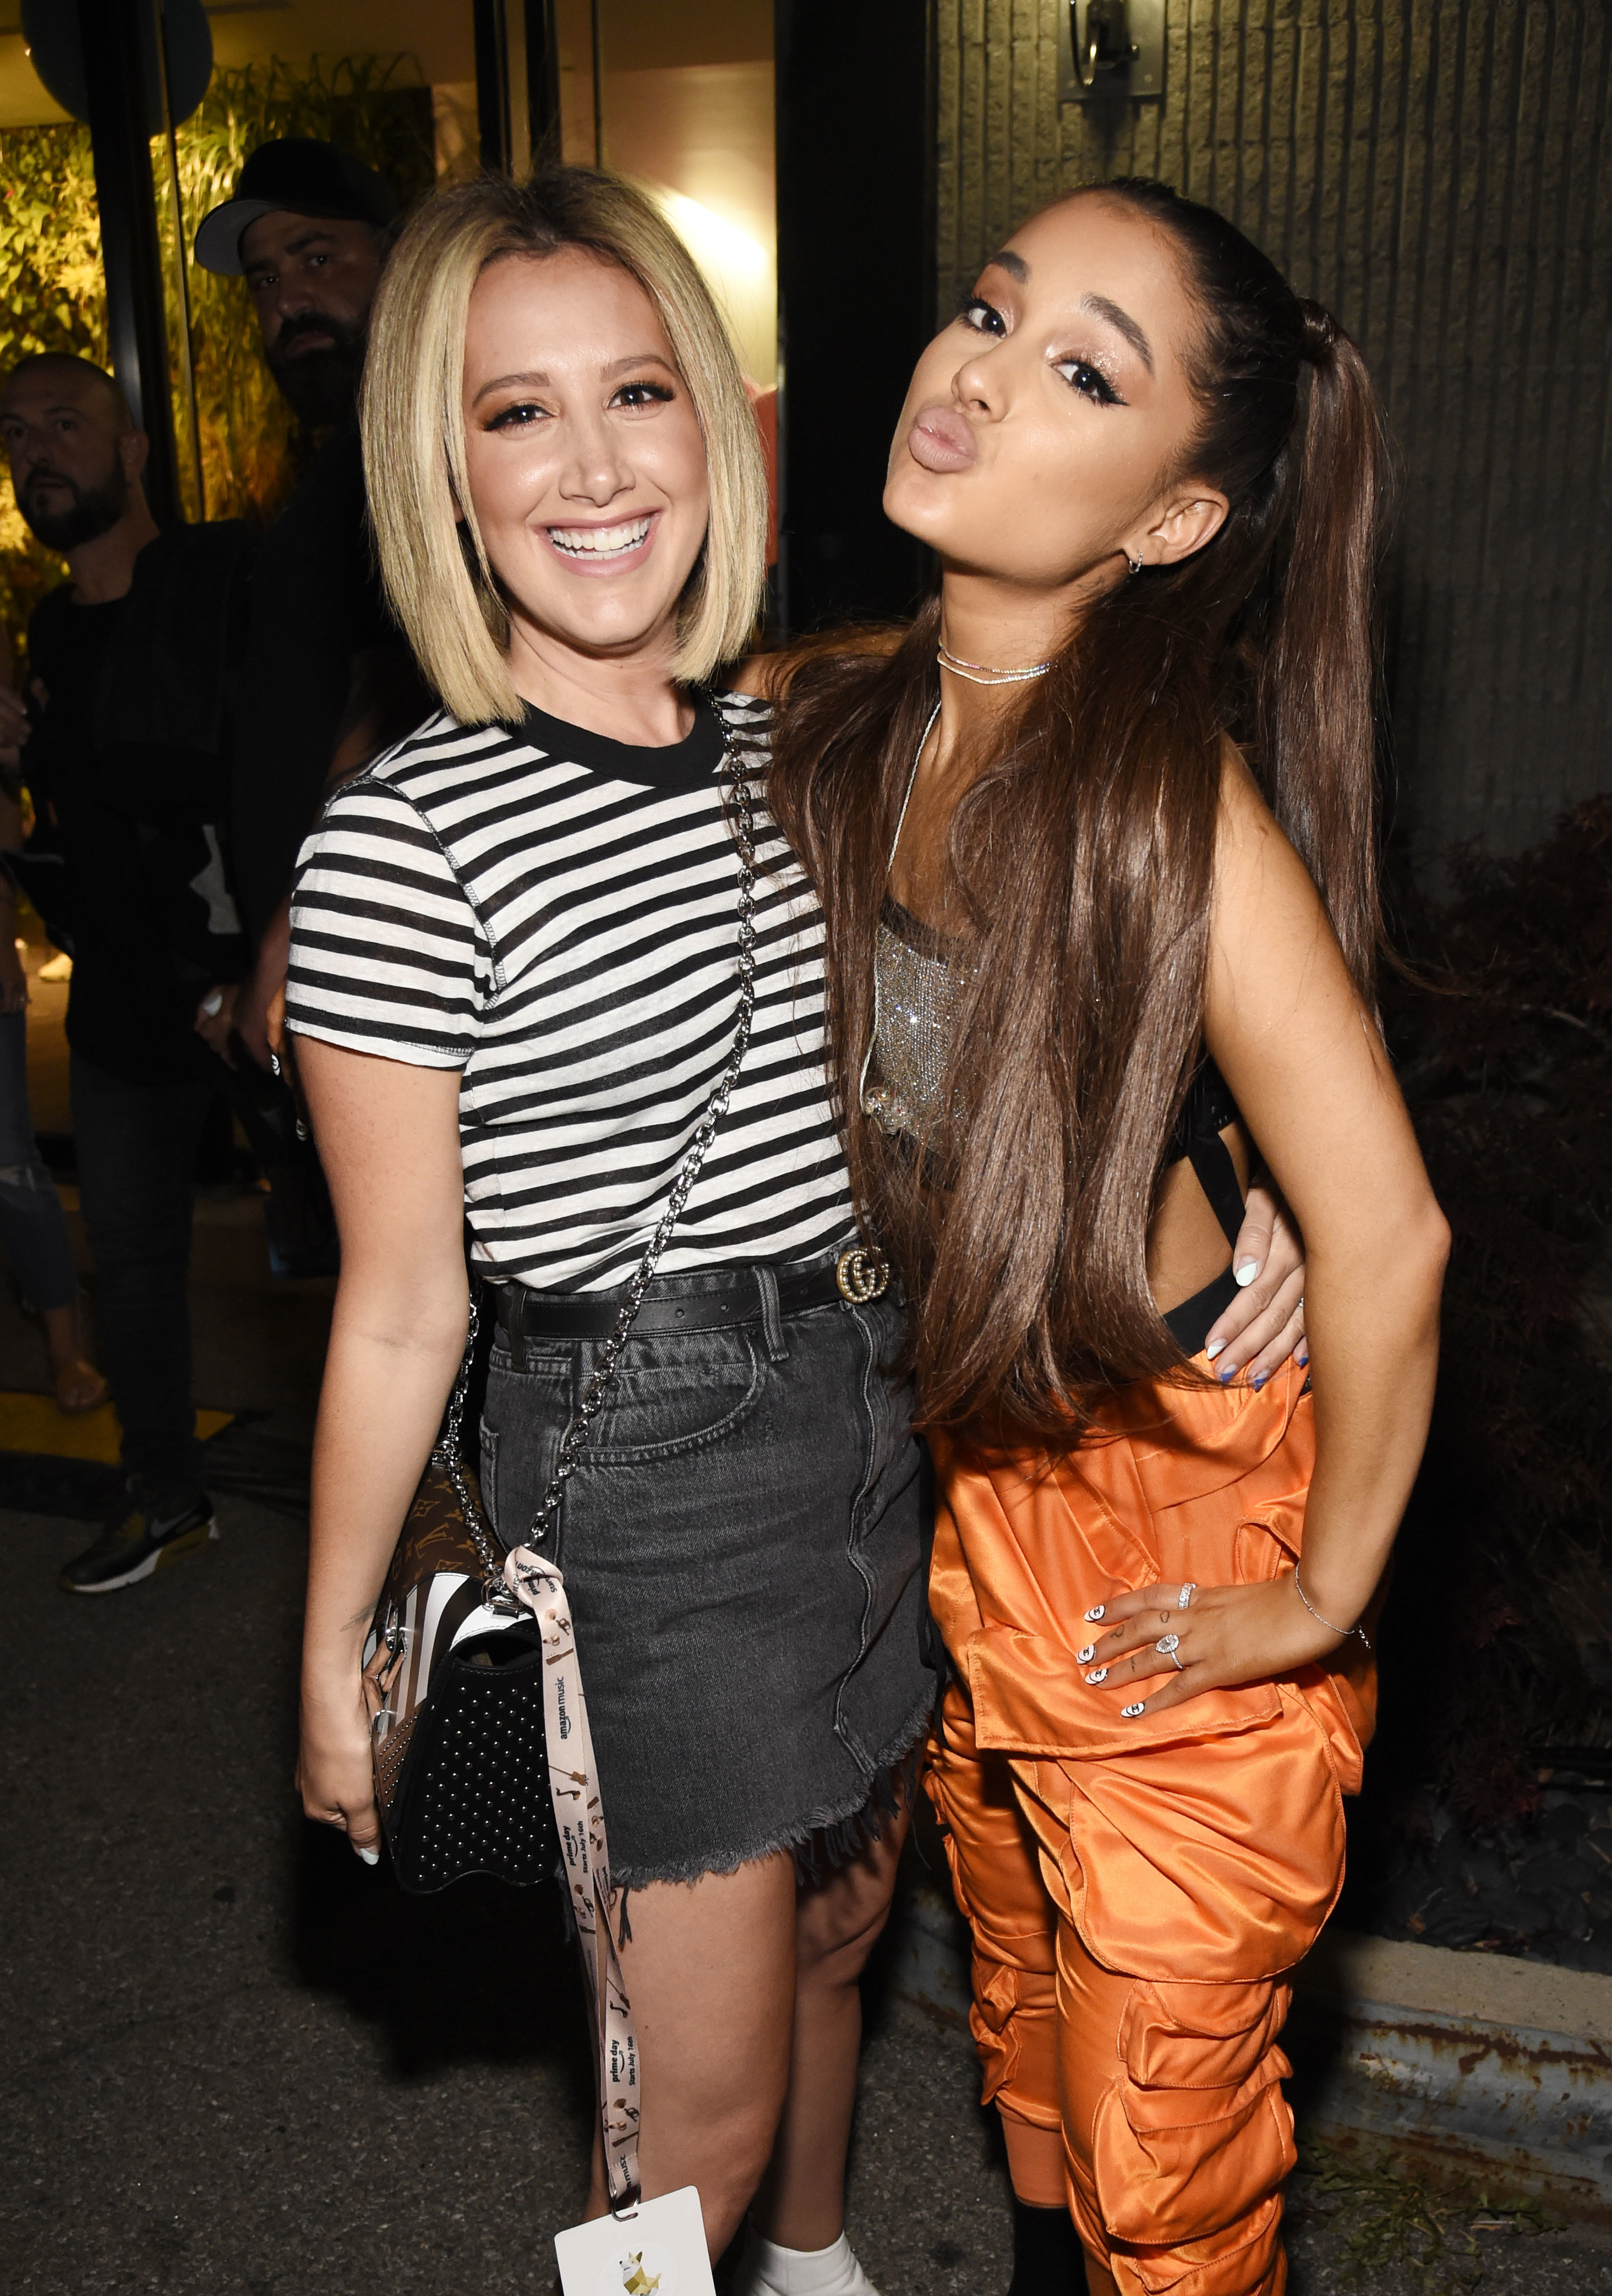 Ashley Tisdale and Ariana Grande pose backstage at the Amazon Music Unboxing Prime Day event in Brooklyn in New York on July 11, 2018.